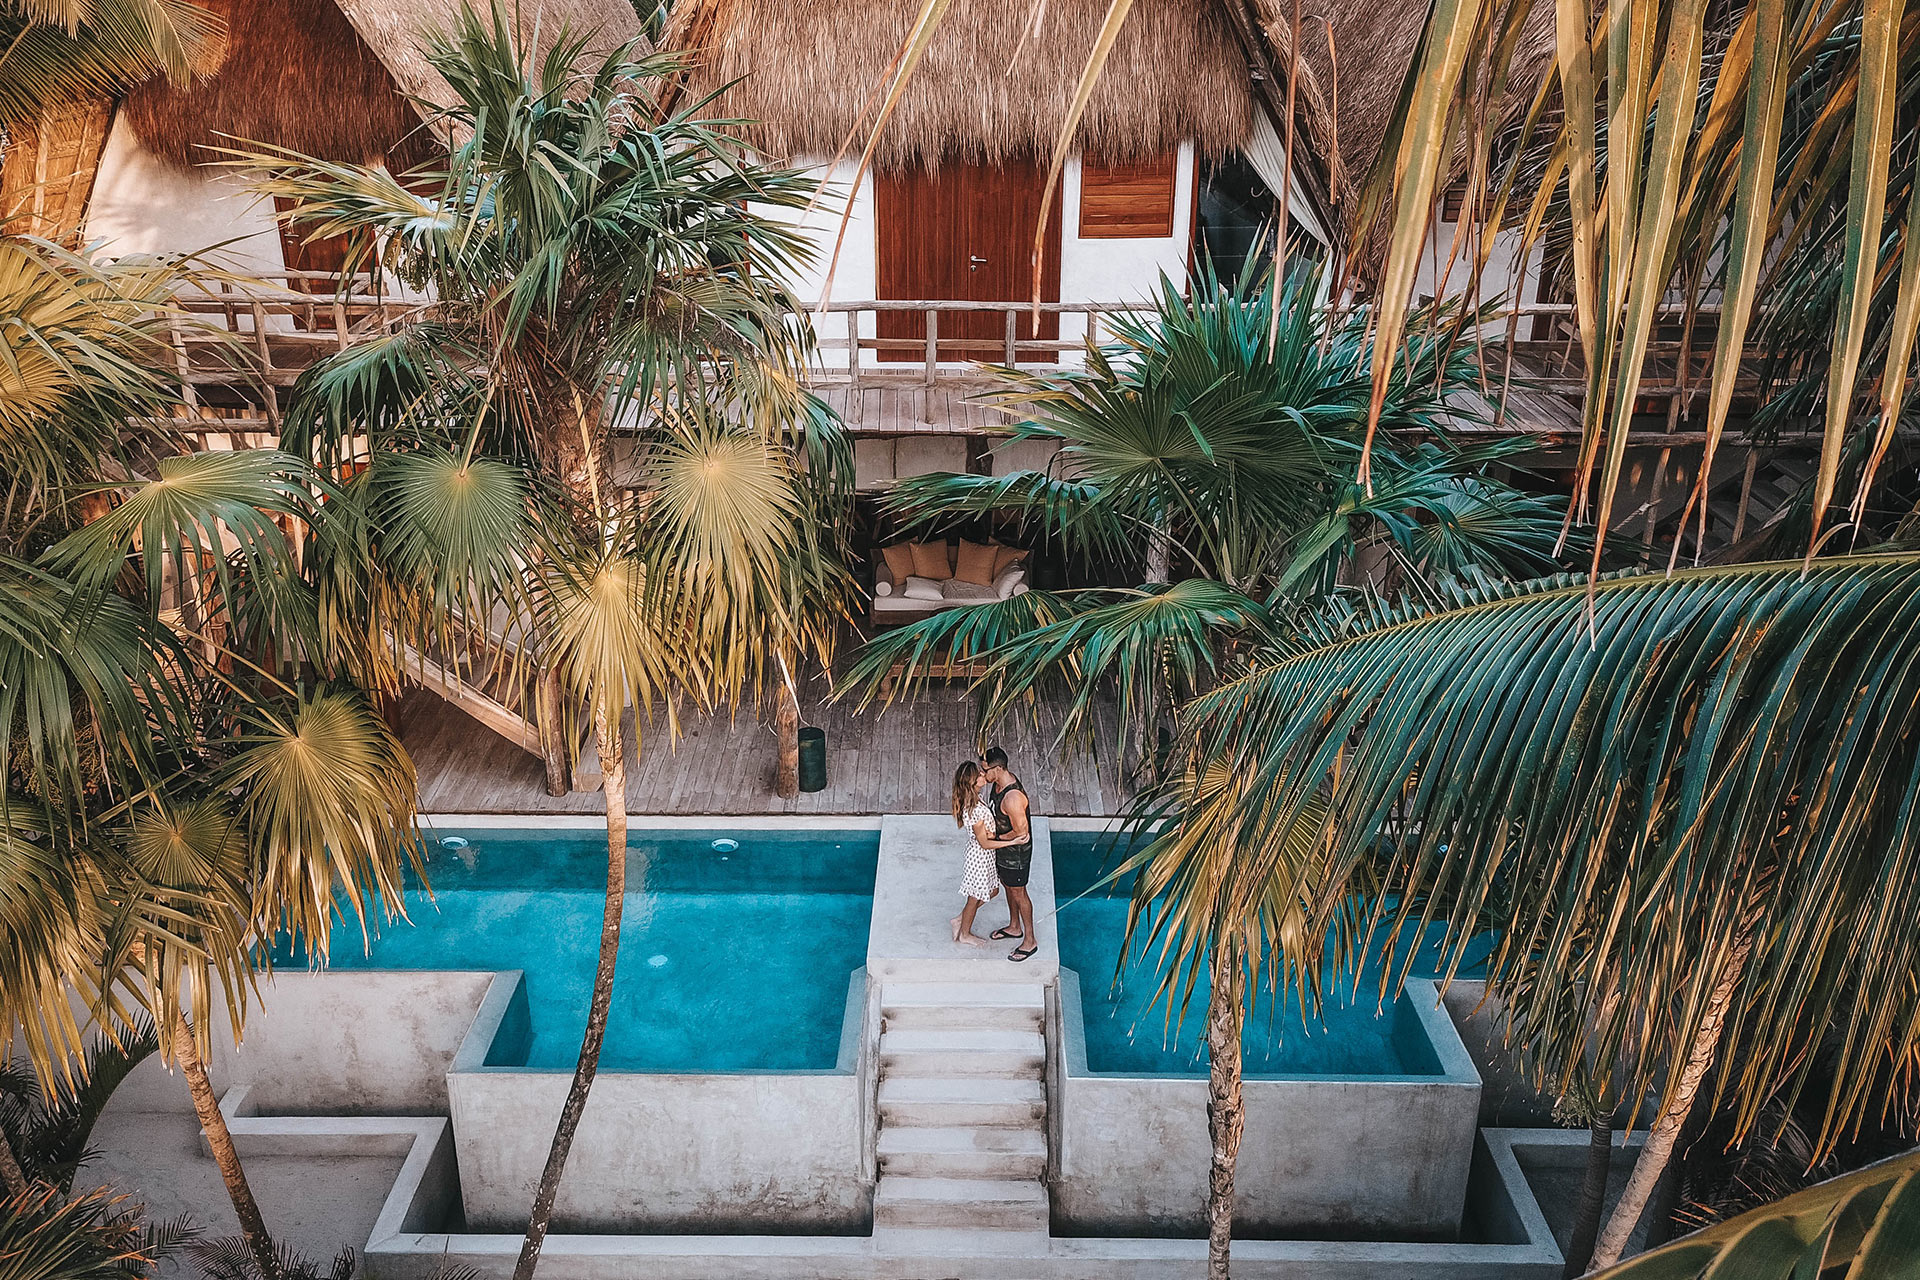 Couple embracing in a tropical destination surrounded by a pool and palm trees